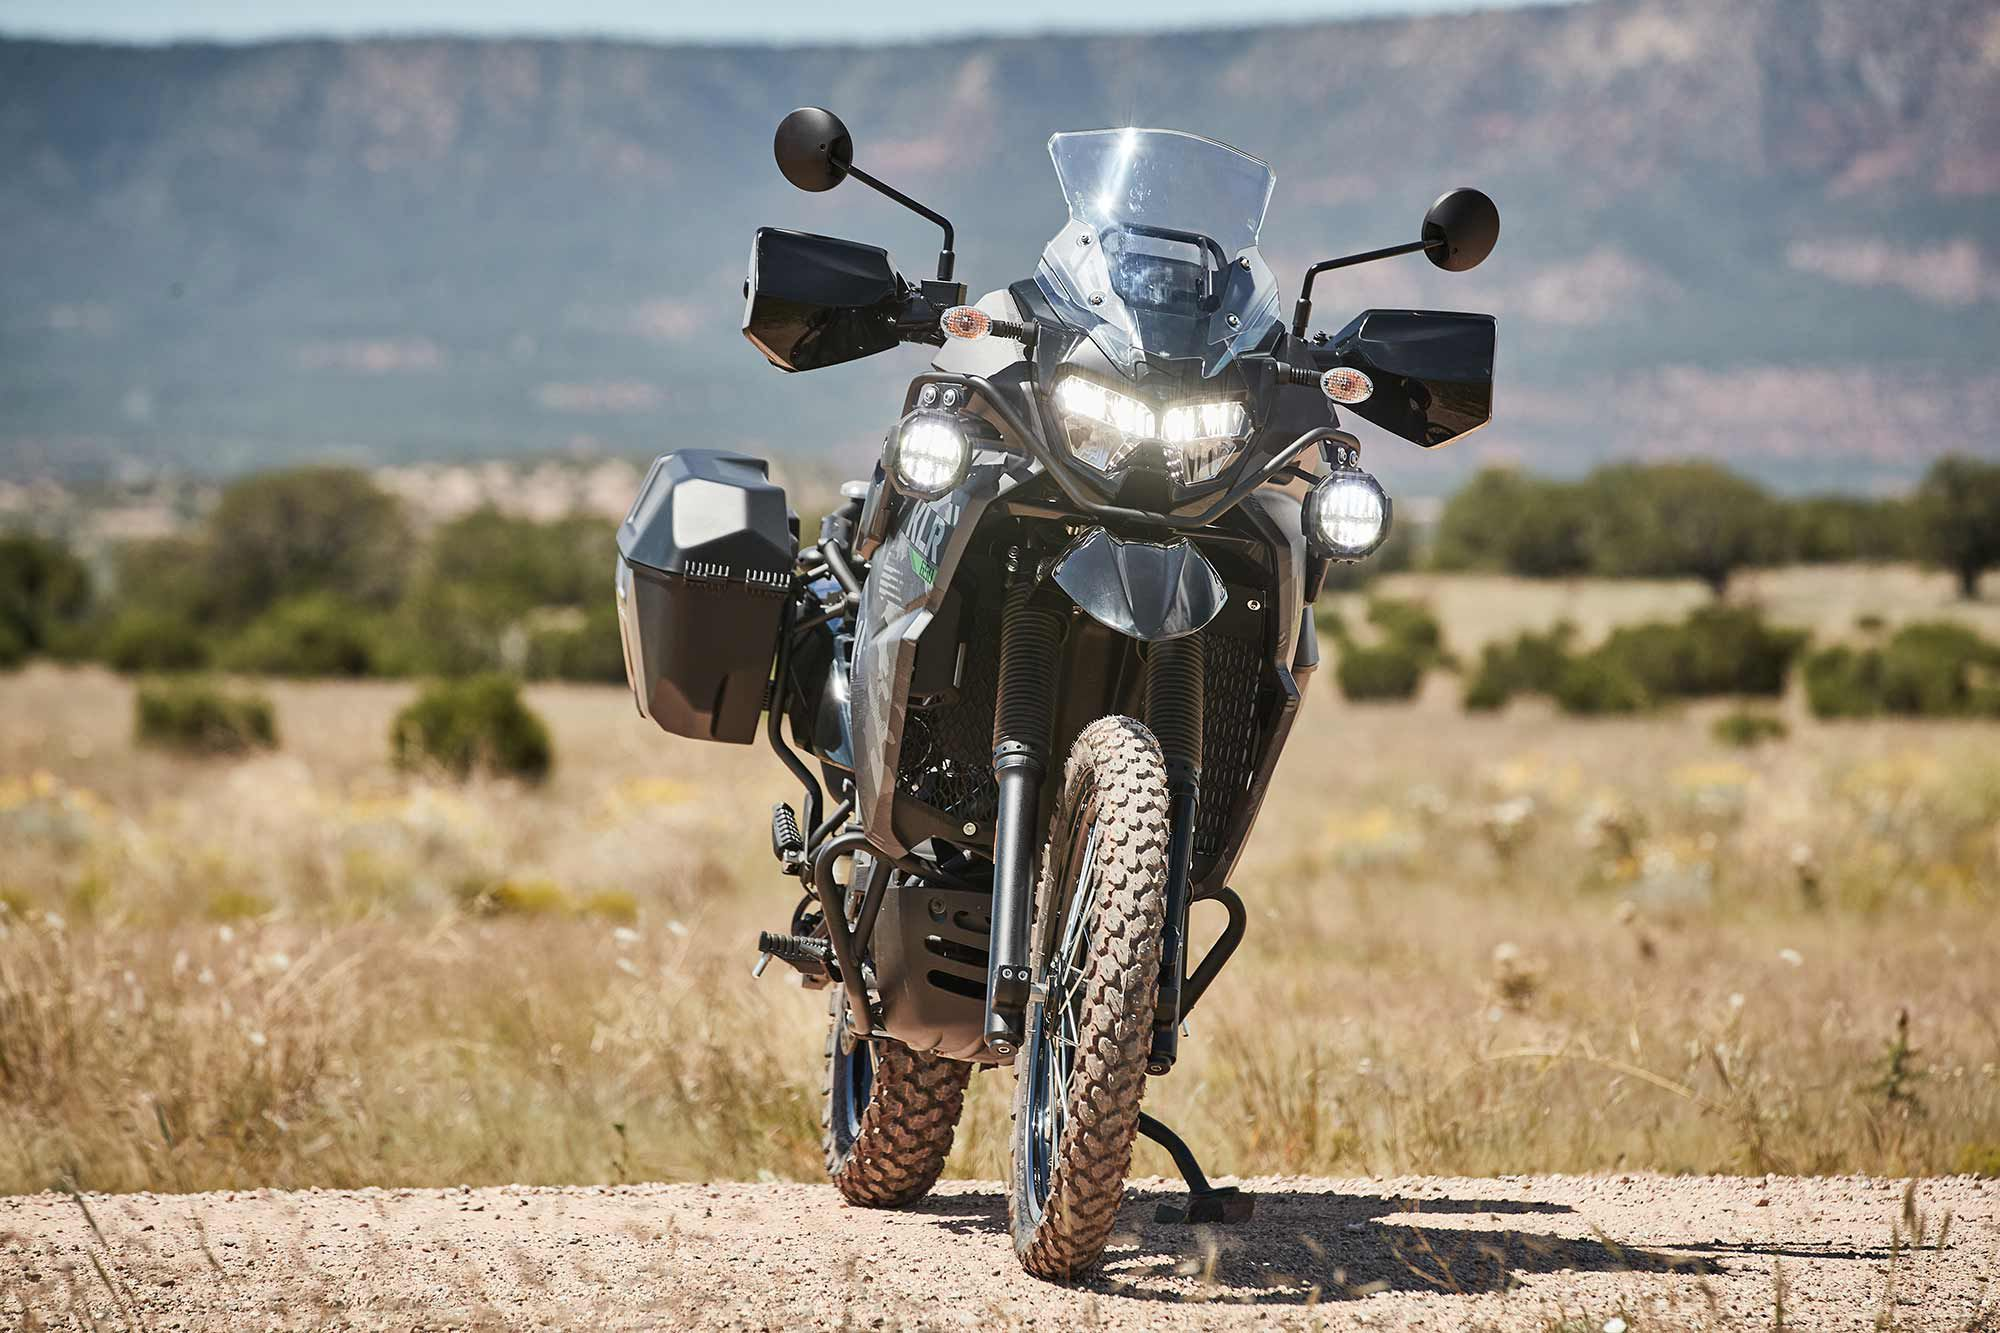 While the KLR650 doesn't have any standout features, it doesn't have many weaknesses—just what is needed from a trustworthy adventure companion.